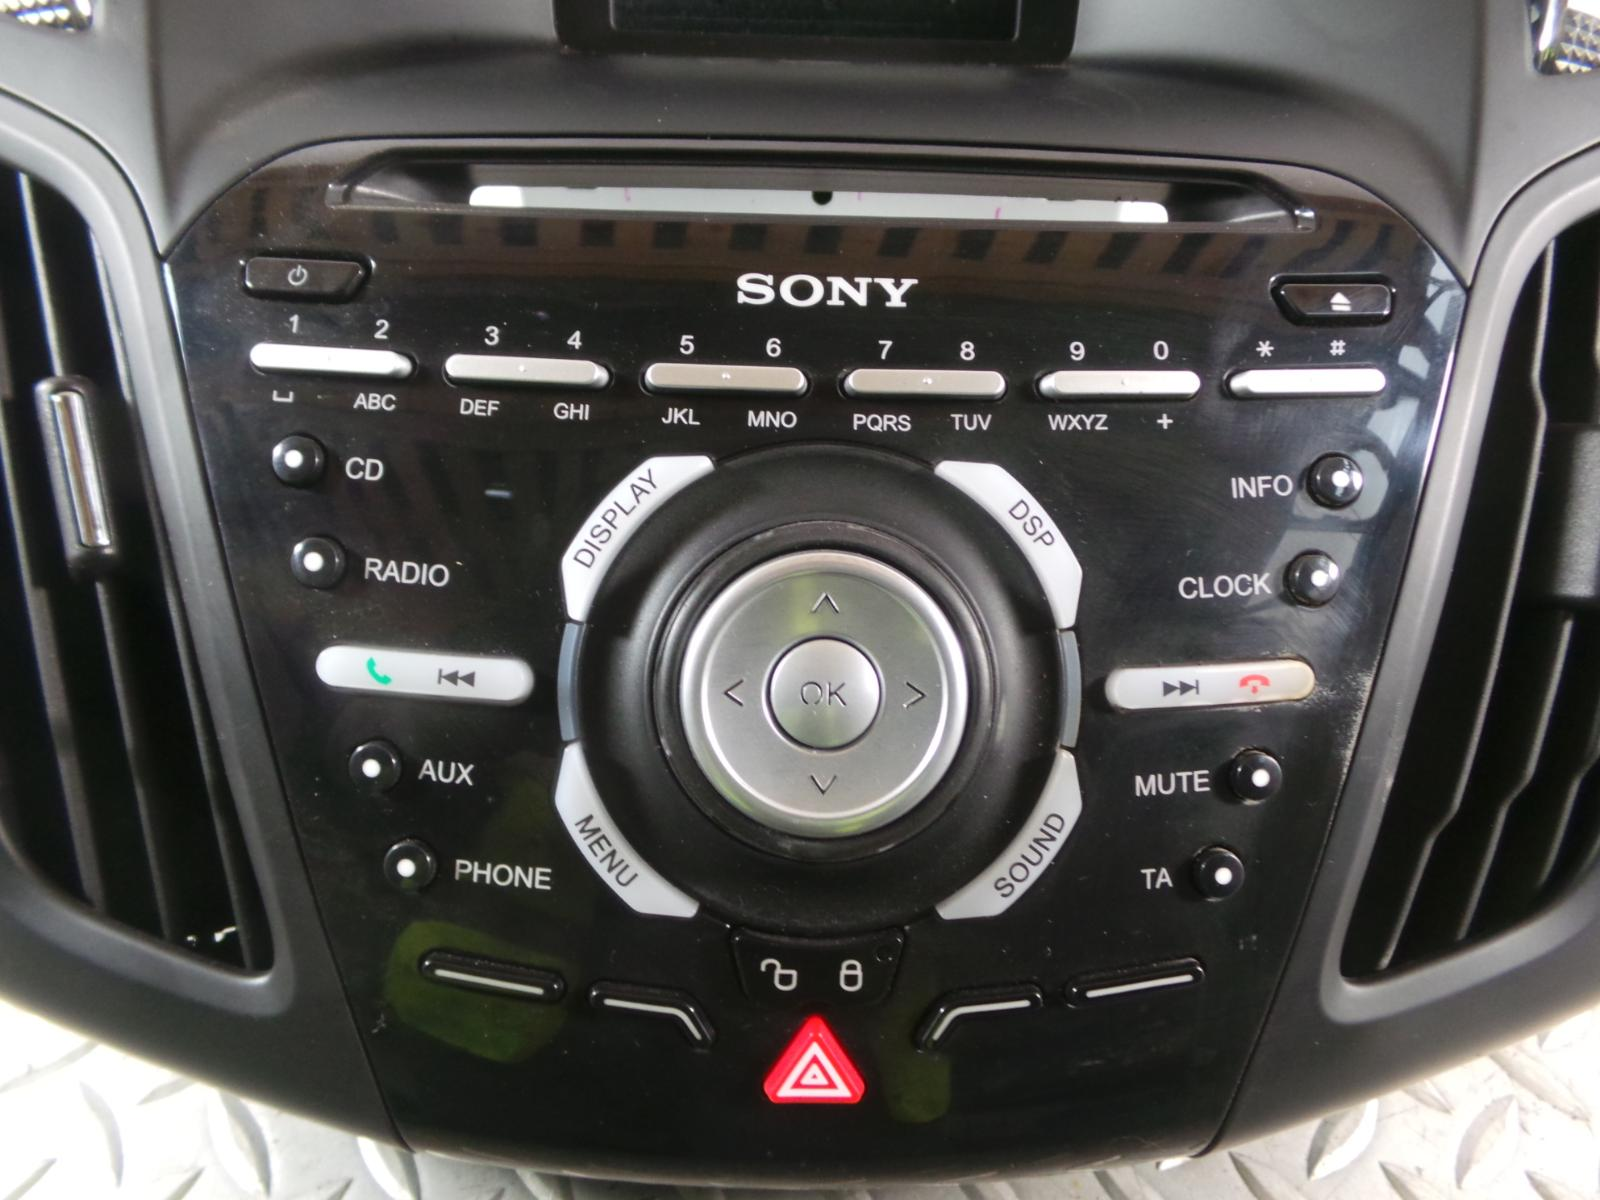 2014 ford focus sony dab ahu cd player radio head unit. Black Bedroom Furniture Sets. Home Design Ideas